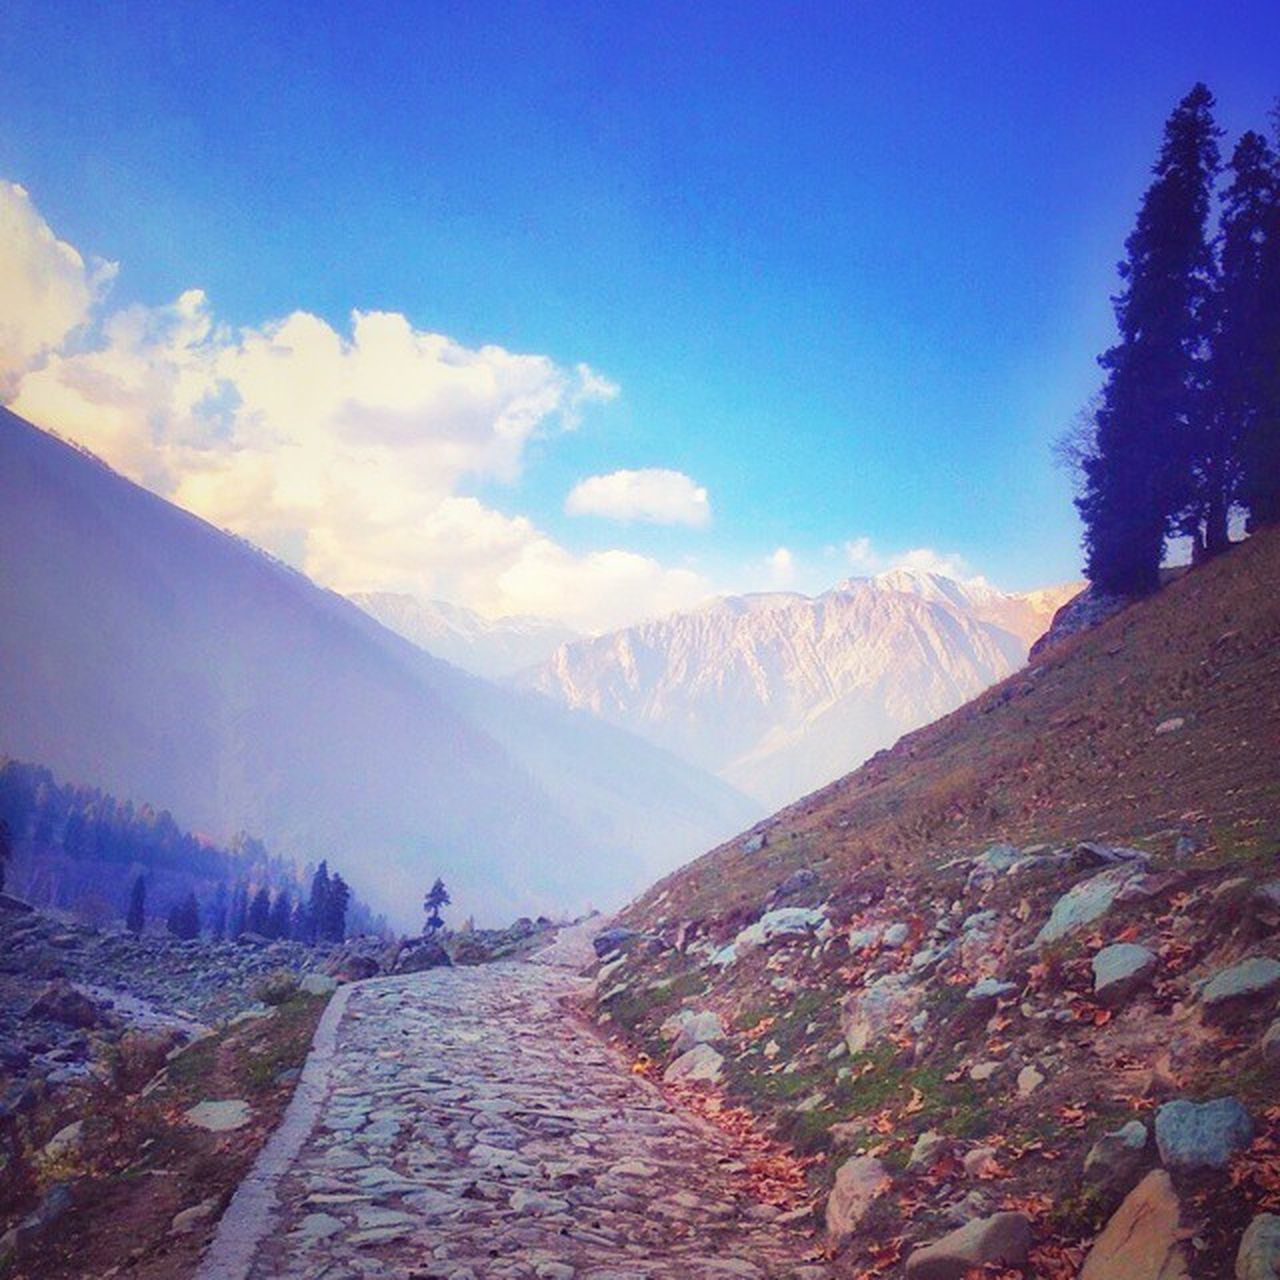 And the mountains echoed... Gulmarg Kashmir Heaven HEAVENONEARTH Travel Sky Yjhd Nature Sunrays Andthemountainsechoed Mountains Traveldiary Scenery Photo Photooftheday Photographie  Traveldiarykr7 Awesomeearth